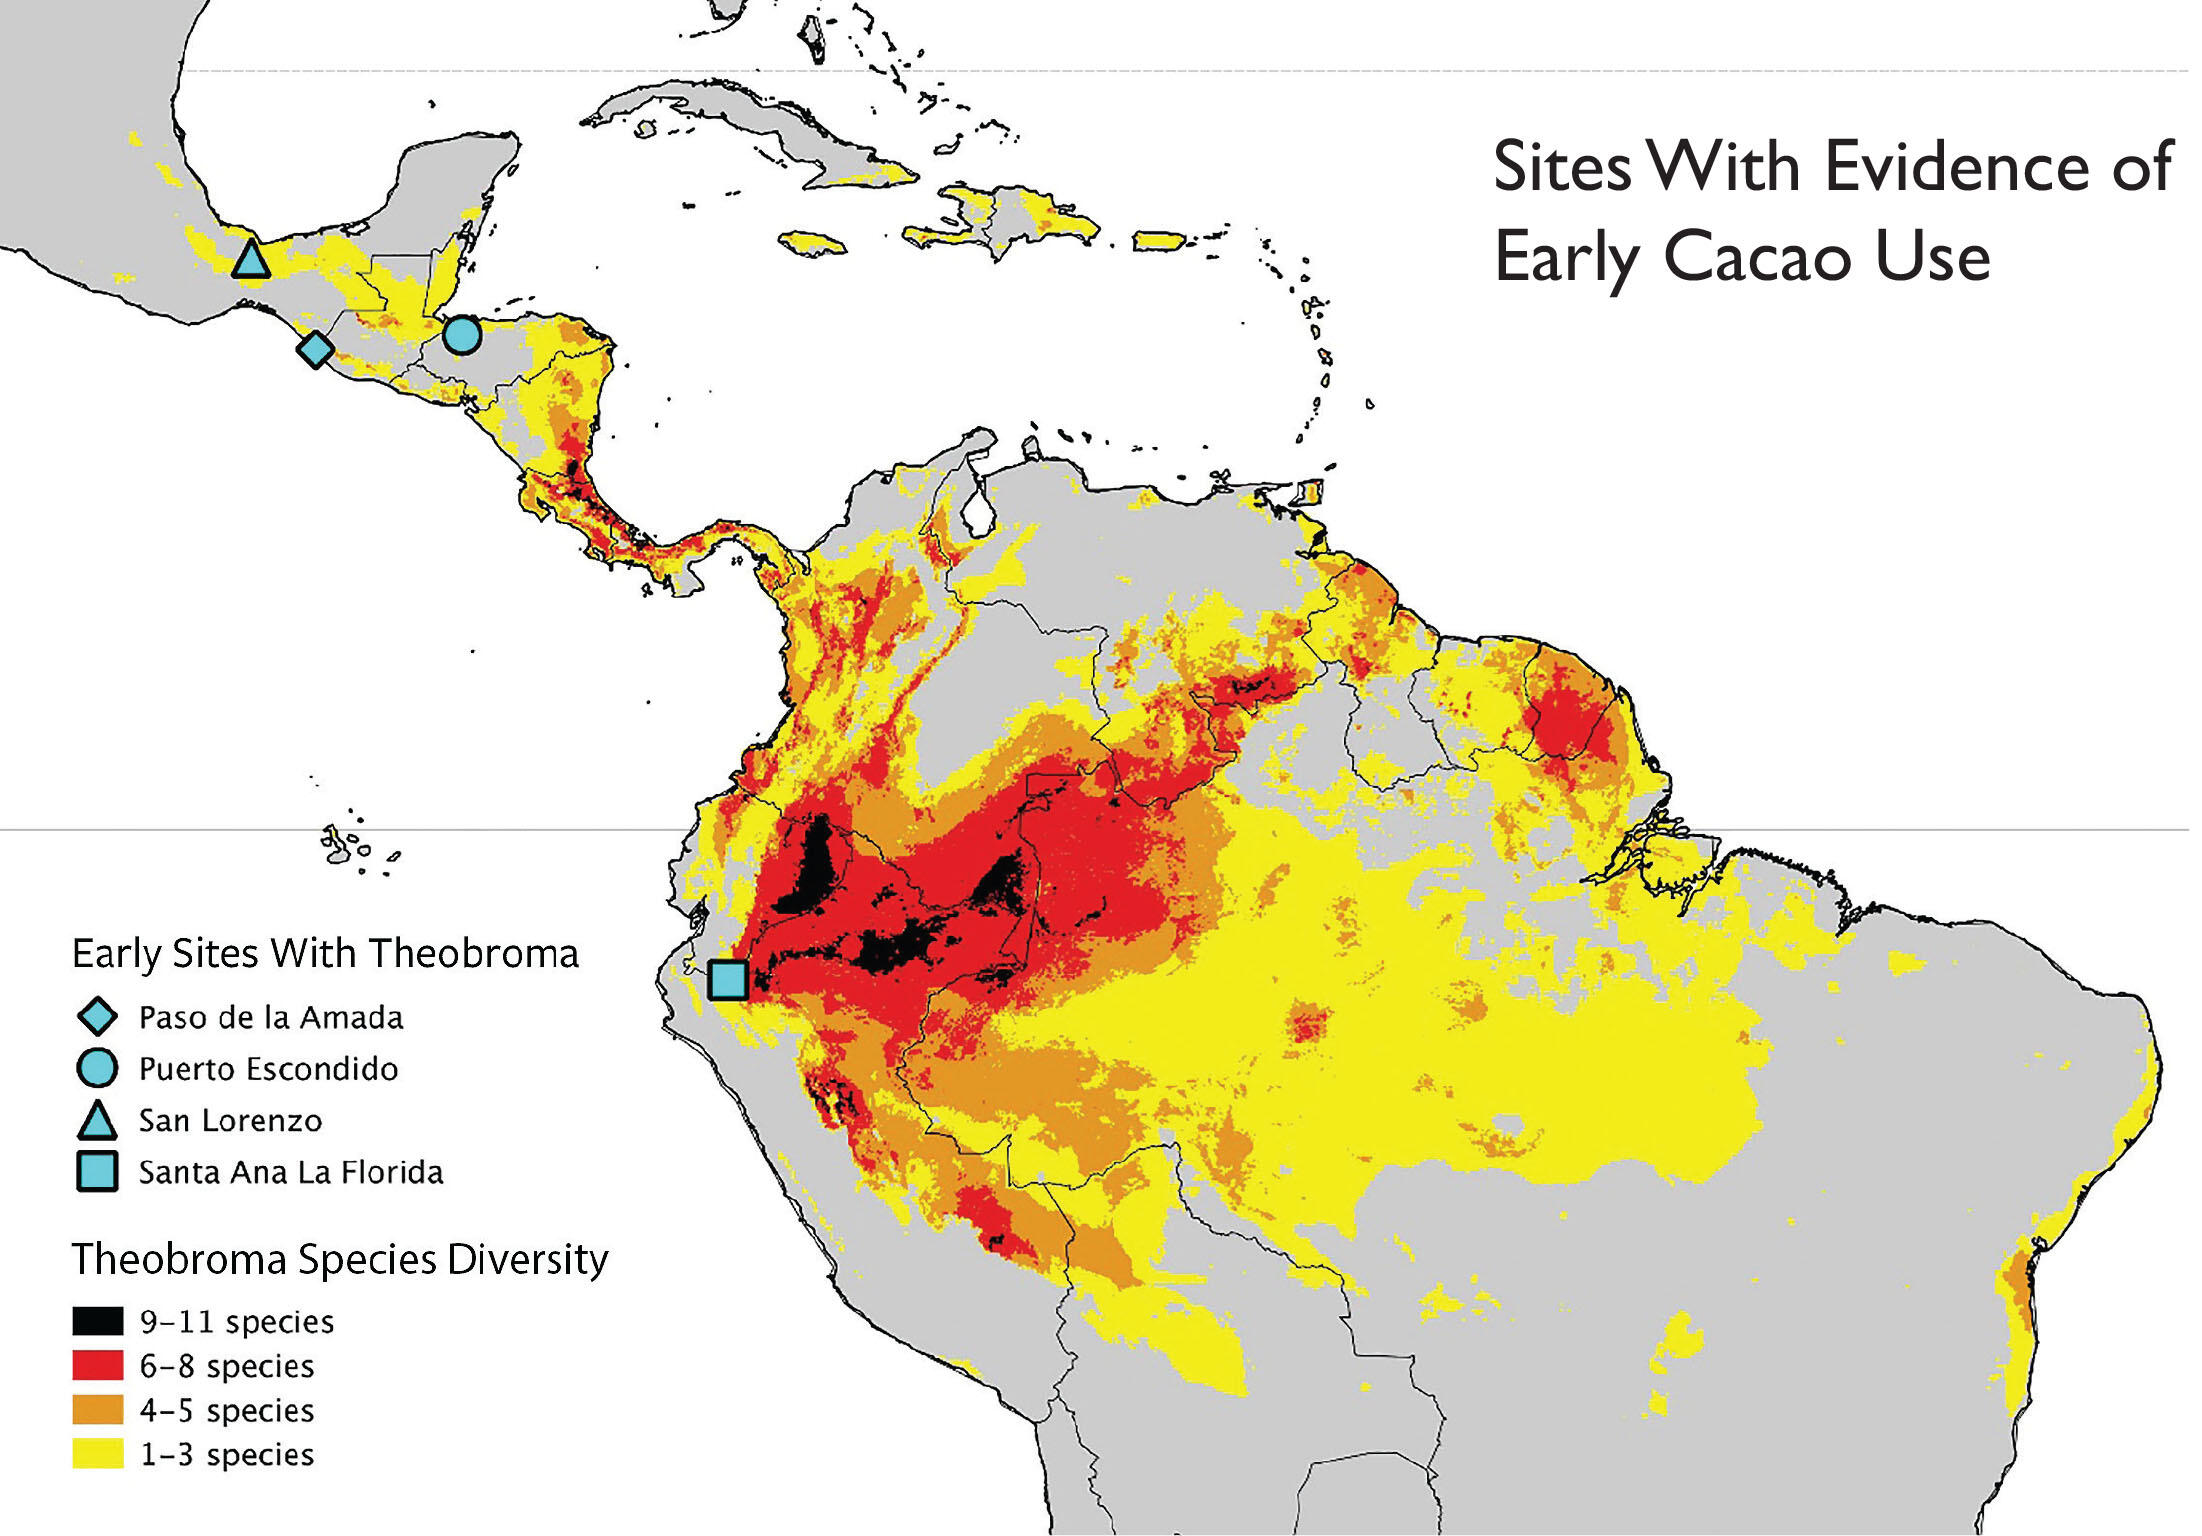 A map highlighting the range of Theobroma in the wild, as well as locations with evidence of early use in Latin America. (Image courtesy of Michael Blake.)